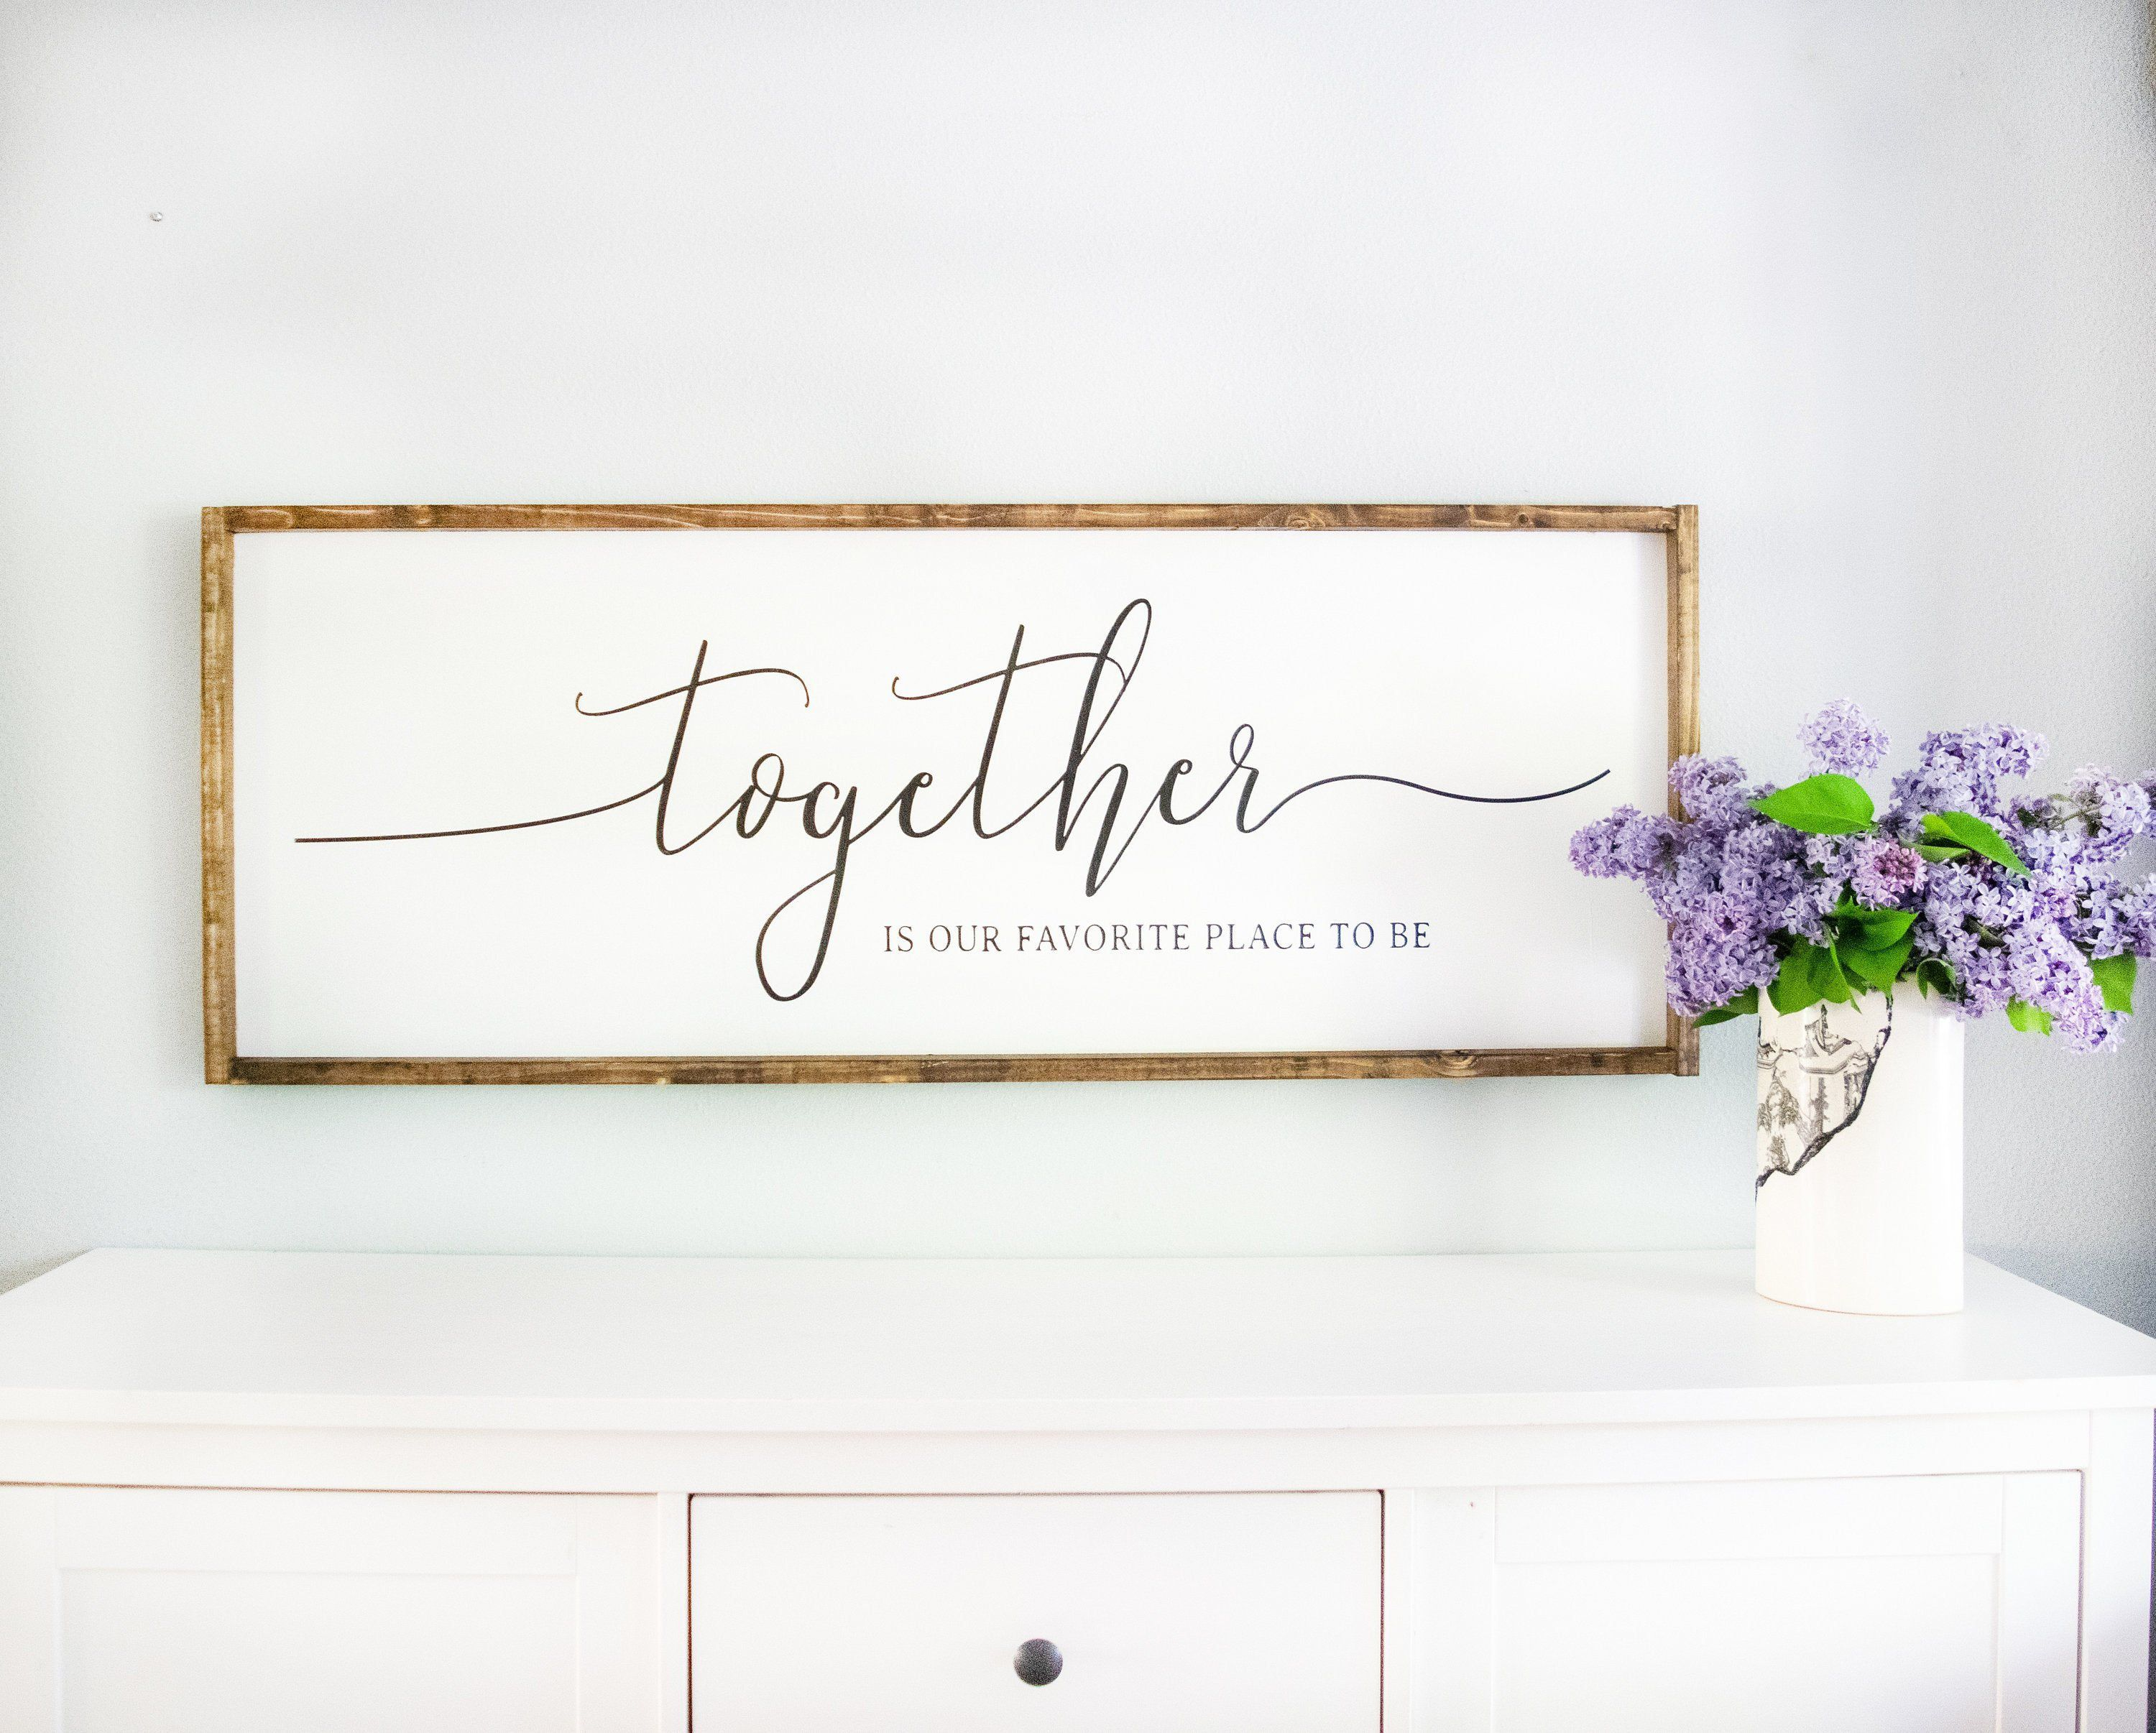 Bedroom Signs Framed White Together is Our Favorite Place